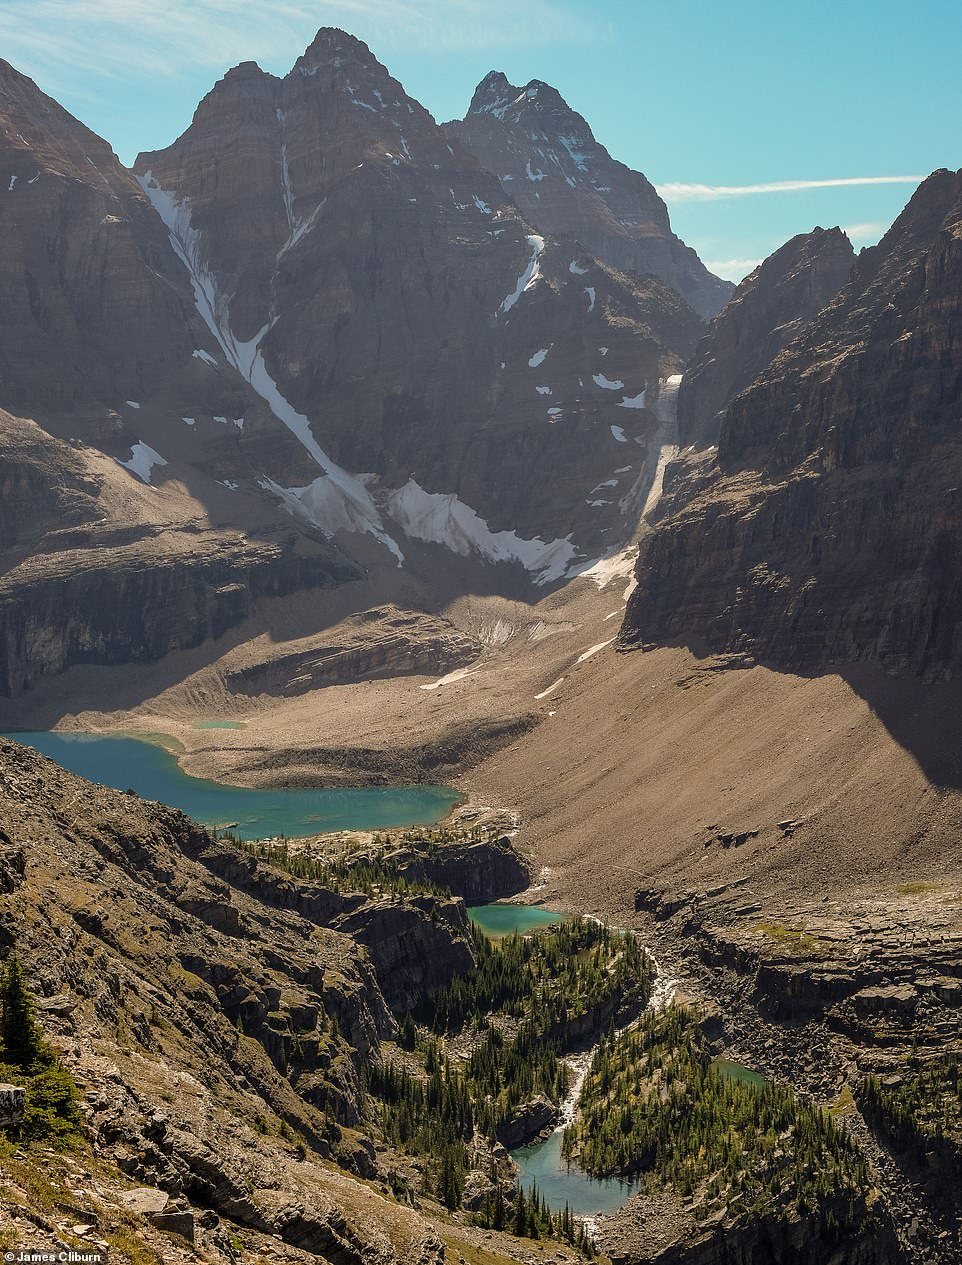 James says: 'Most of the places you see photographed from Canada are busy locations you can drive to. They are worth visiting, but if you do some research, you can get away from the chaos and experience a bit more of the Canadian wilderness.' Pictured is Lake Oesa, a lake 7,438ft (2,267m) up in the mountains of Yoho National Park